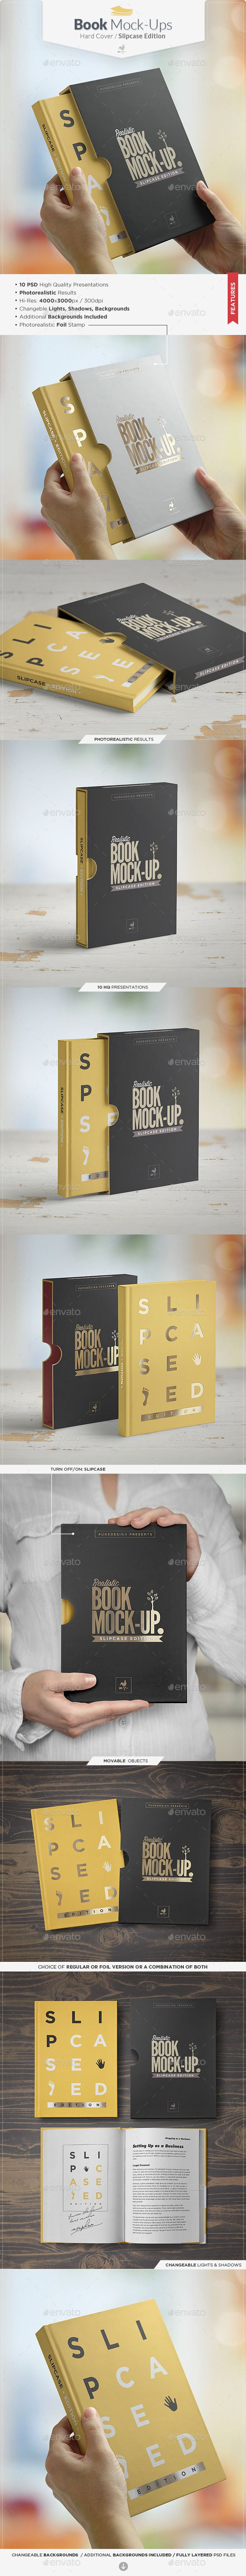 Book Mock-up / Slipcase Edition | #bookmockup | Download: http://graphicriver.net/item/book-mockup-slipcase-edition/9332736?ref=ksioks